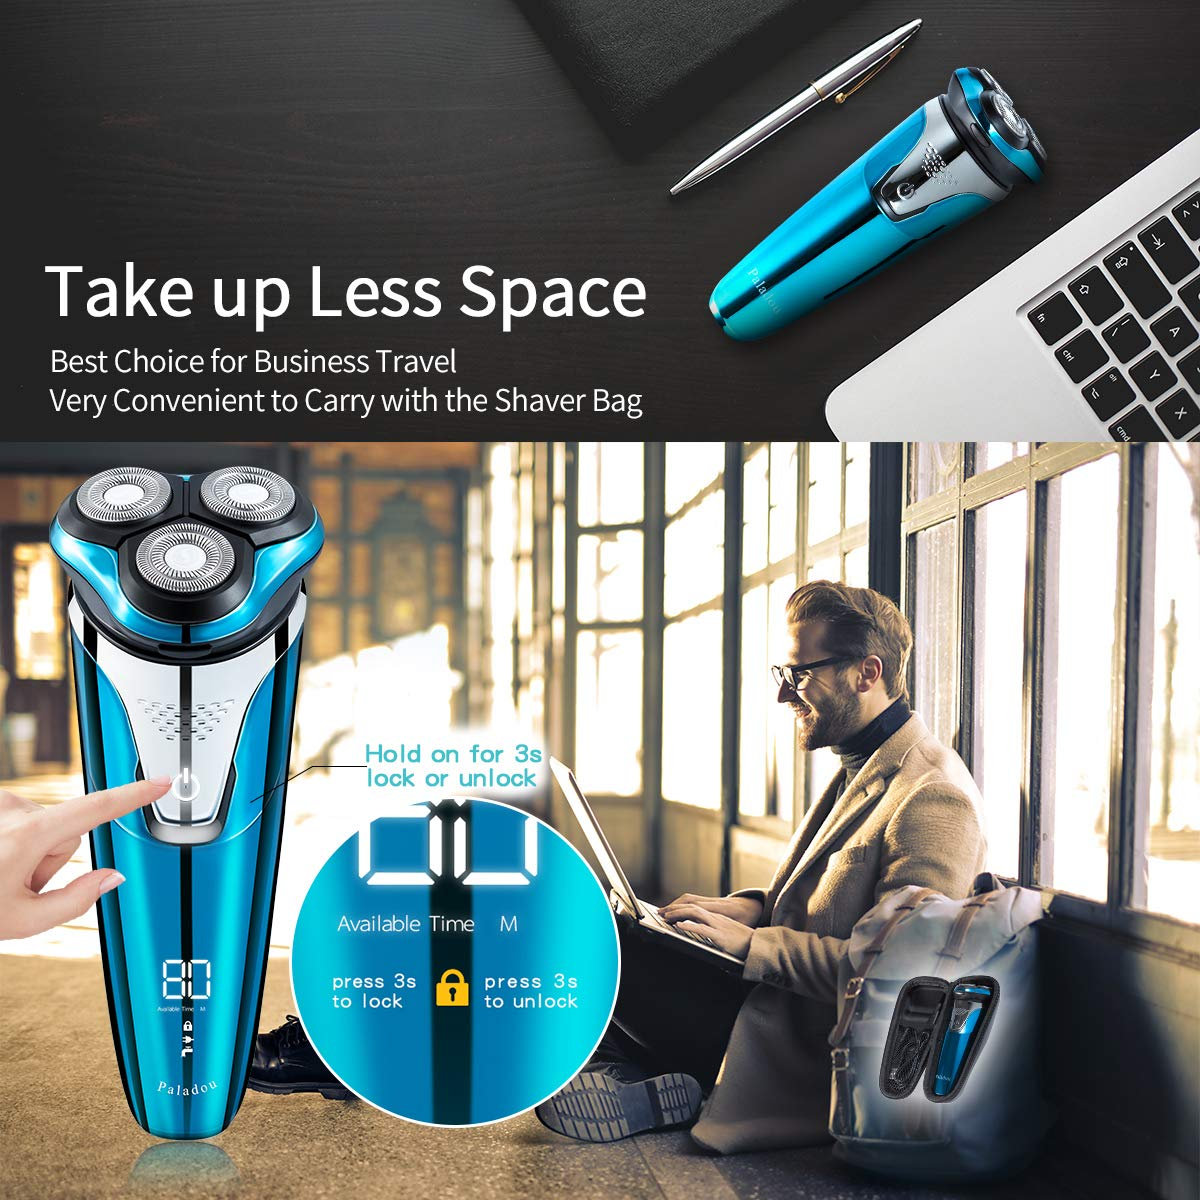 Paladou Professional Electric Razor Rotary Shavers For Men, Best Personal Portable Travel With Case Bag, Waterproof Cordless Facial Face Beard Trimmer Gift Set, Wet Dry Rechargeable USB Series Kit